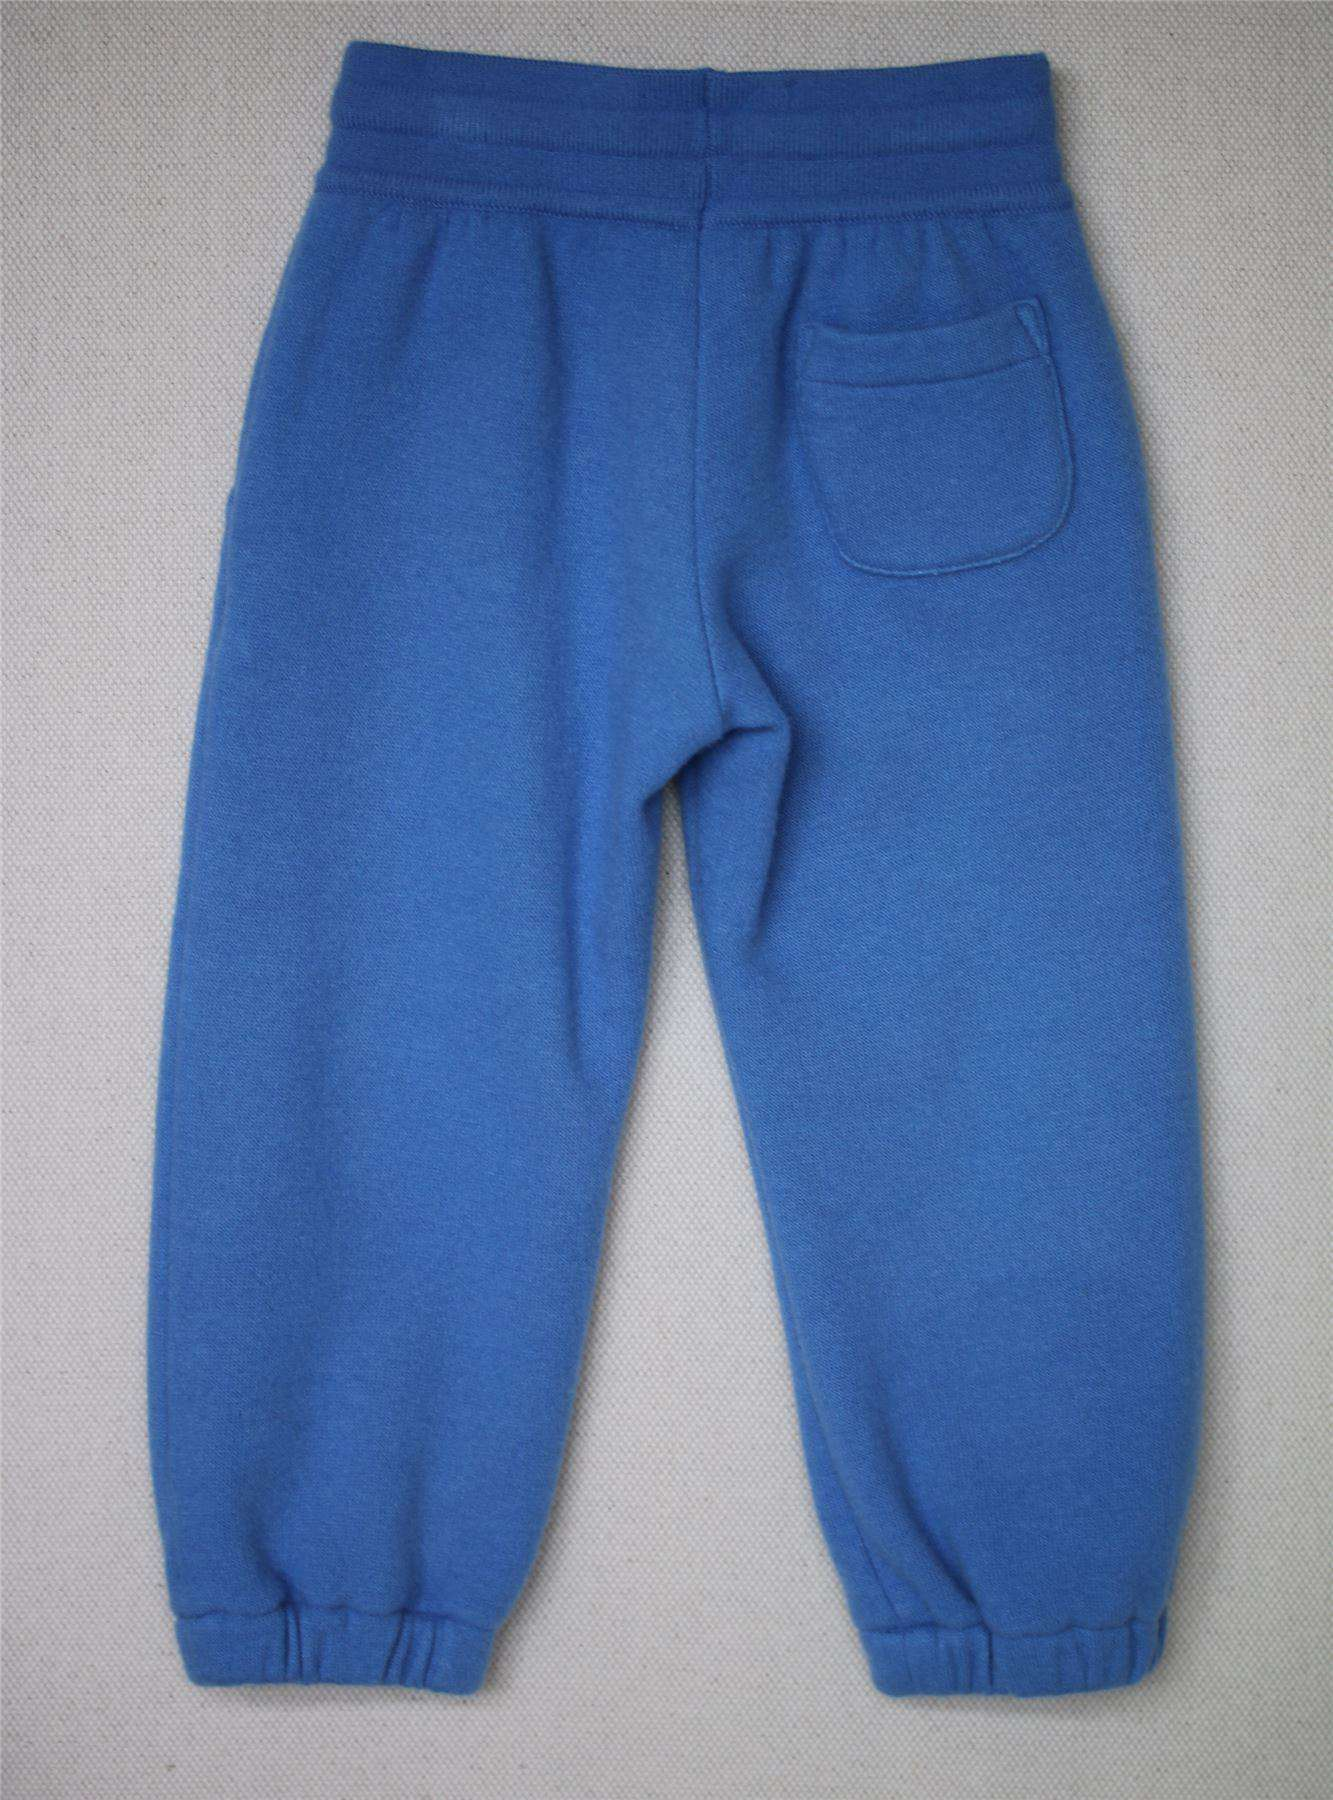 LORO PIANA BOYS BLUE CASHMERE TRACKSUIT 2 YEARS